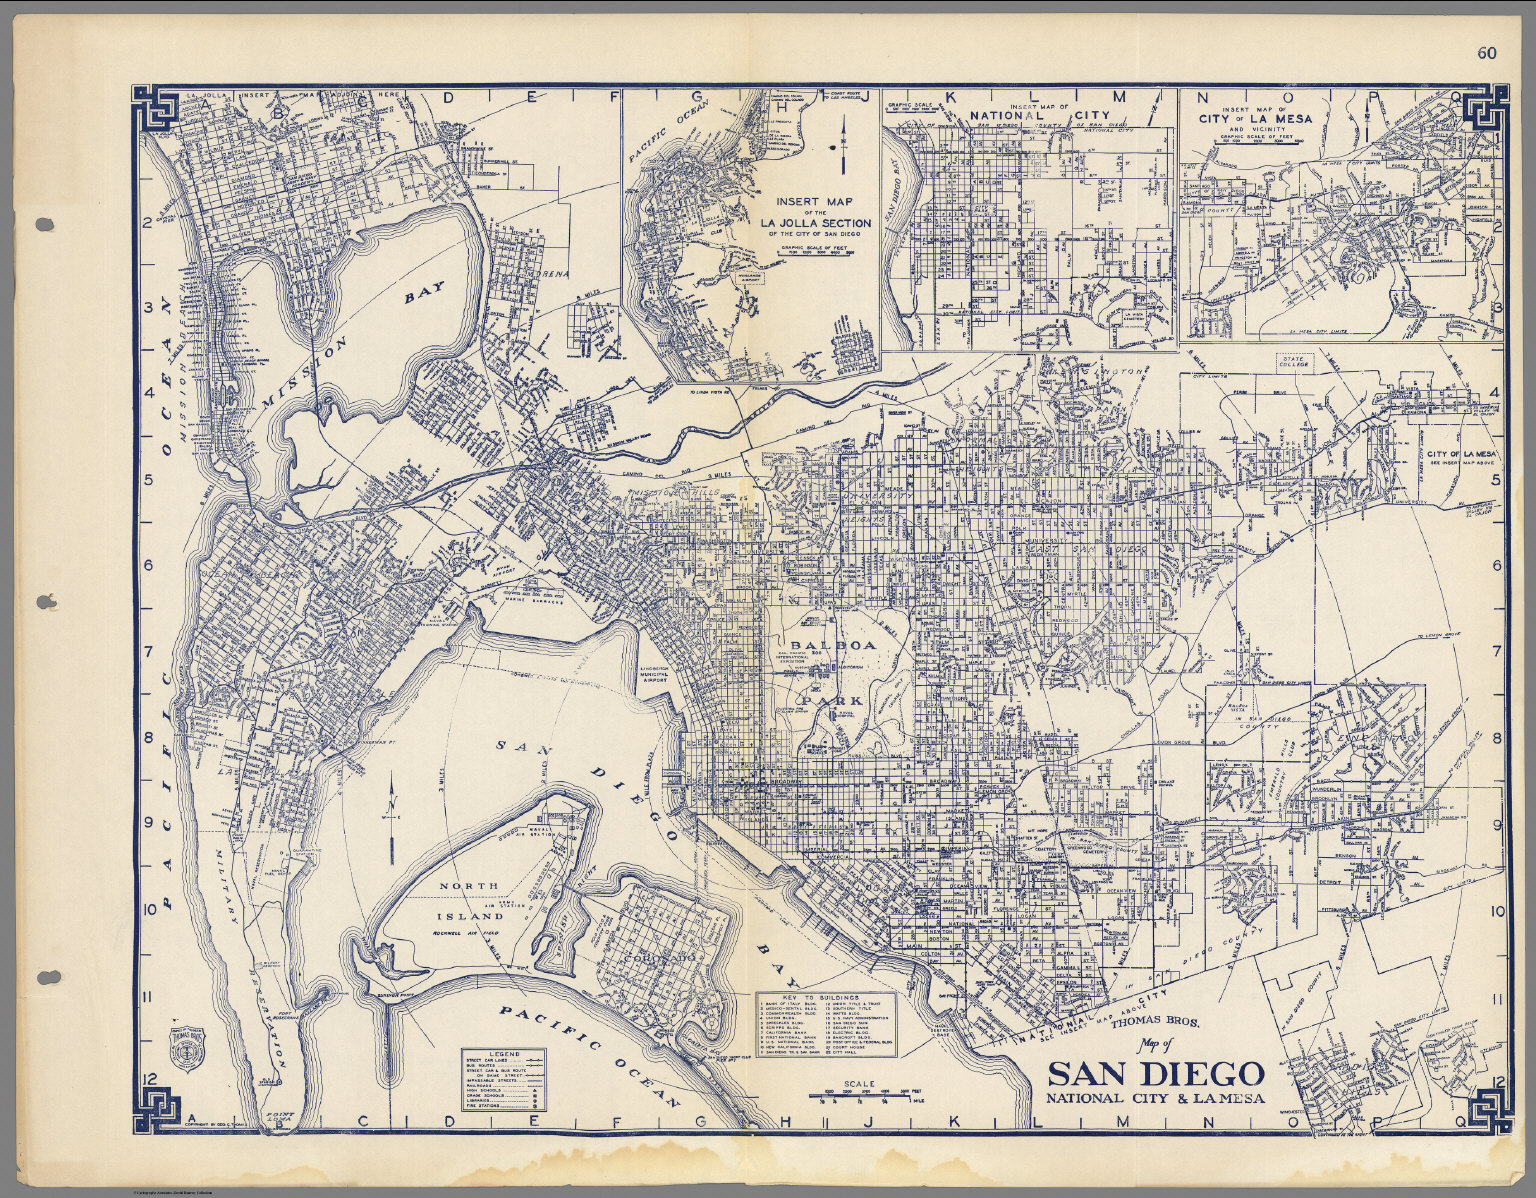 Thomas Bros. Map Of San Diego, National City & La Mesa, California - Thomas Bros Maps California